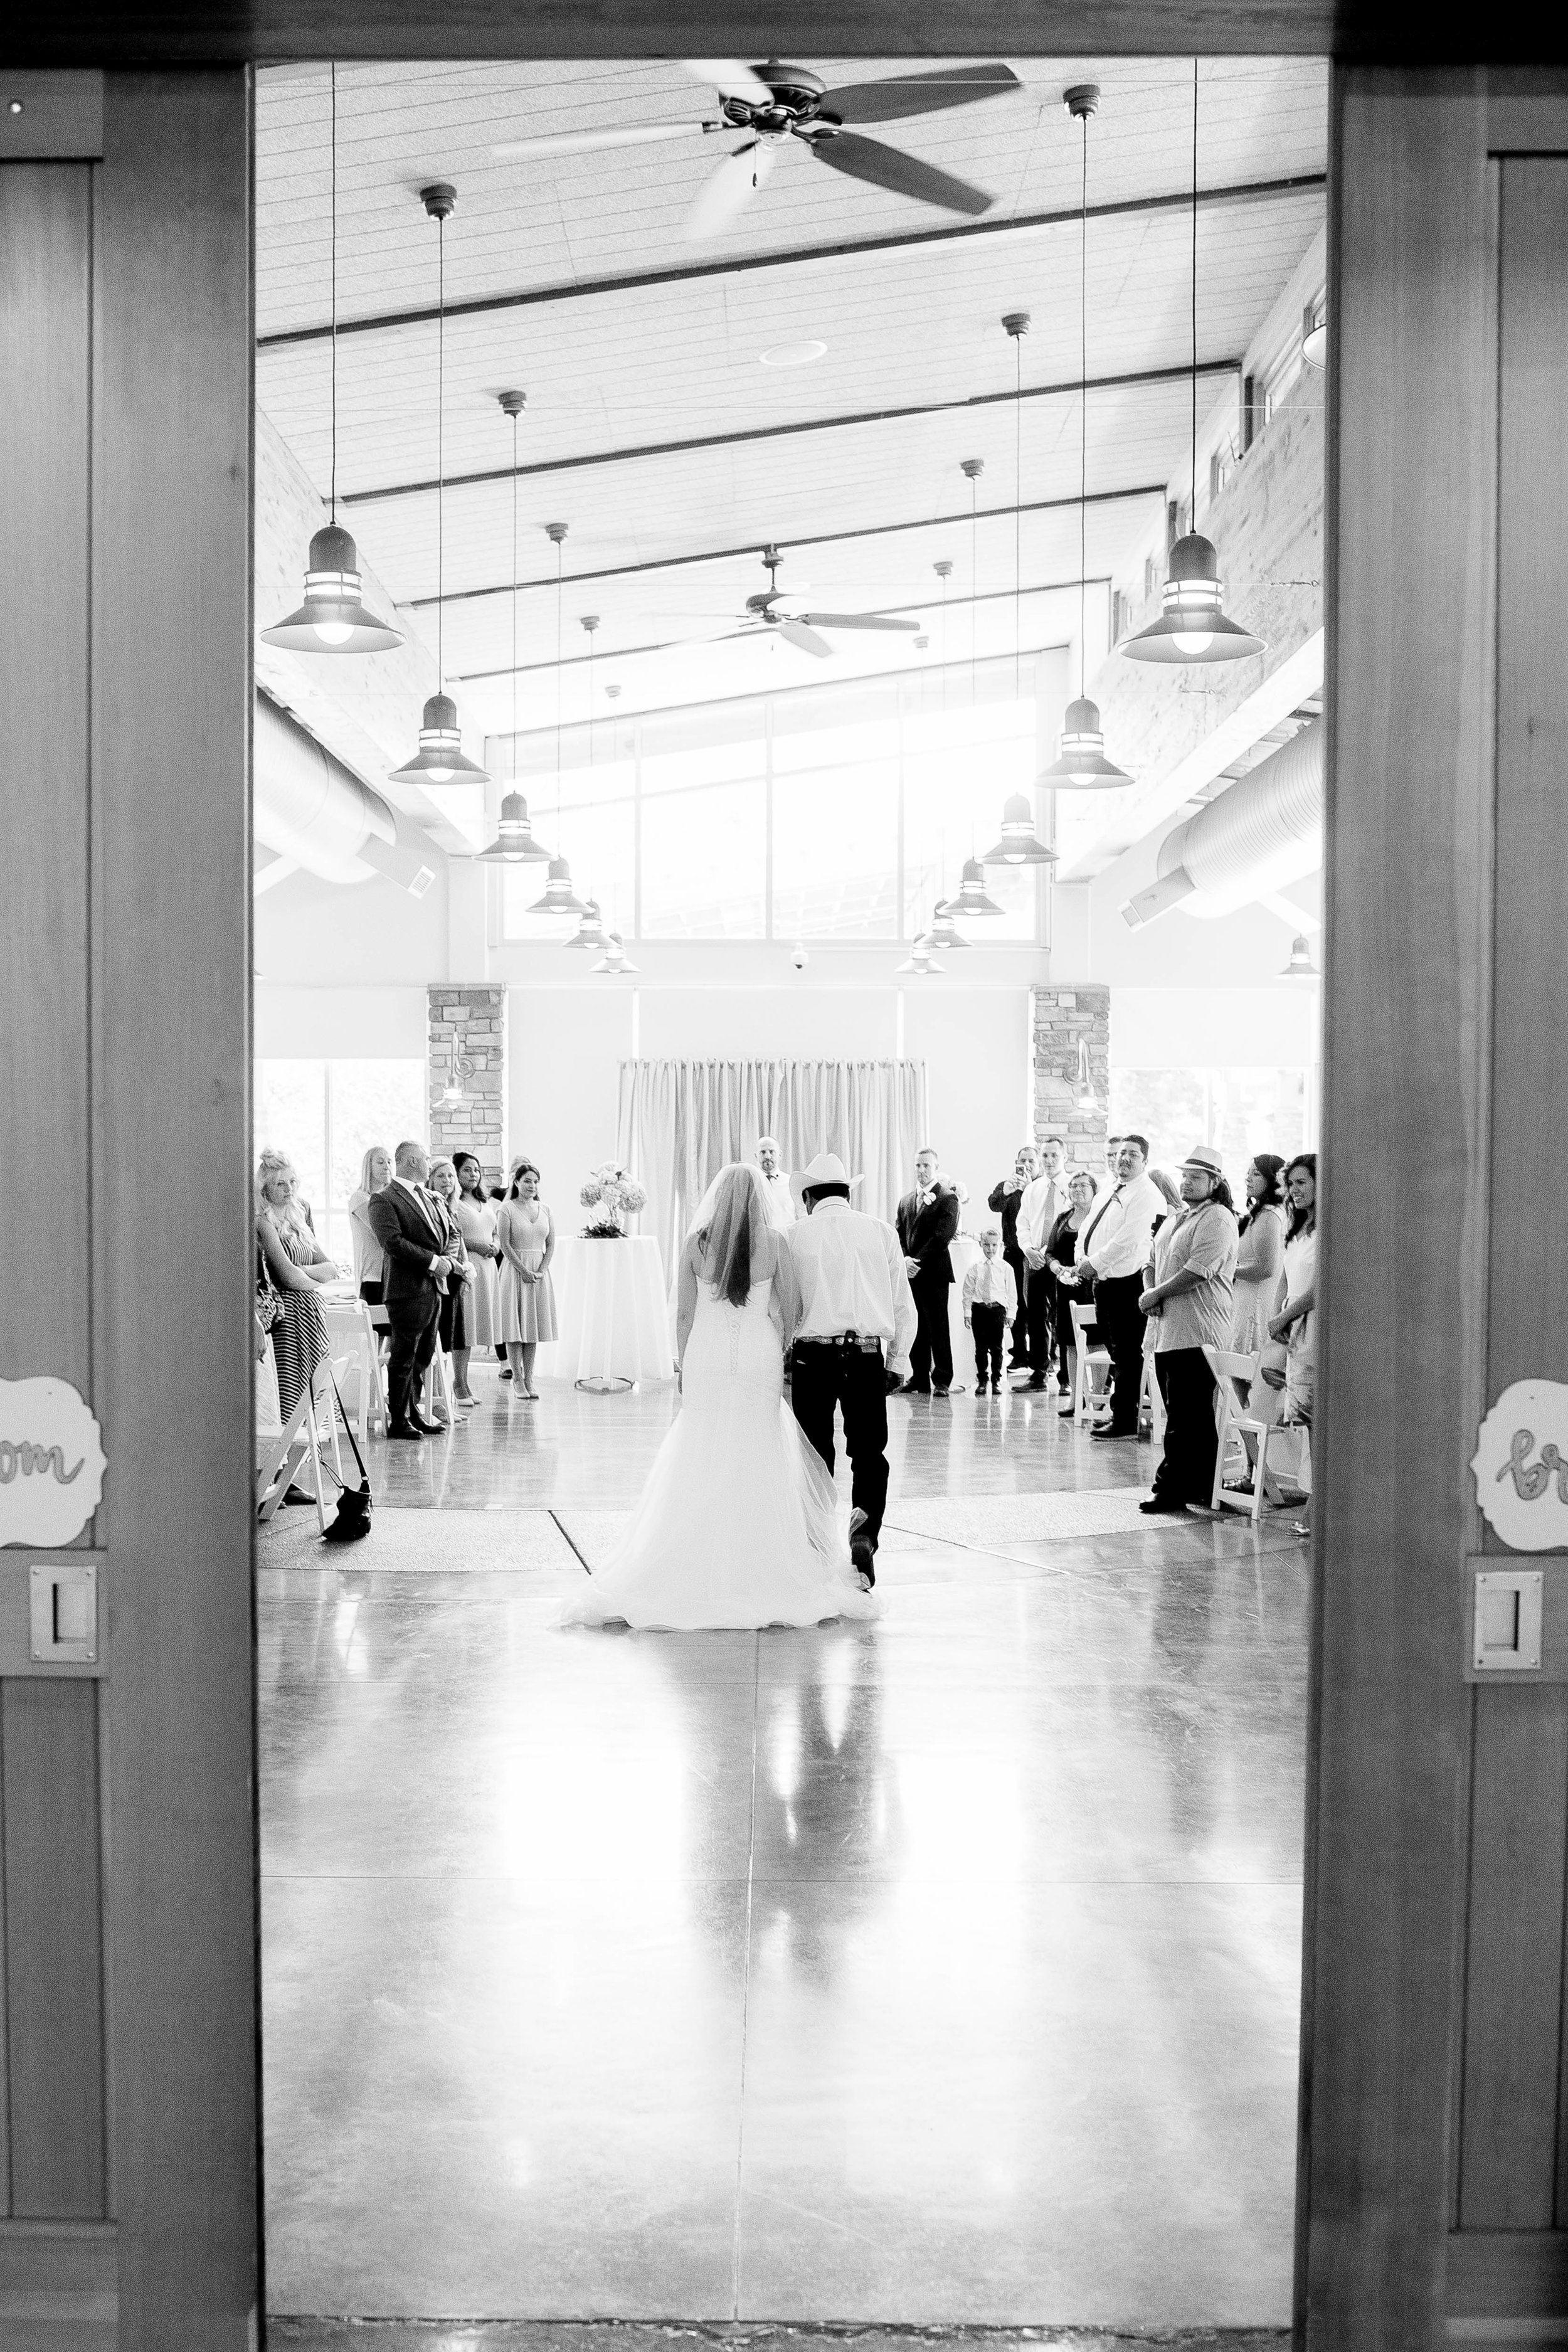 Wedding Ceremony Ideas- Wedding Ceremony Photography- Barber Park Wedding Ceremony- Boise Photographer- Idaho Photographer- Idaho Wedding Photographer- Boise Wedding Photographer